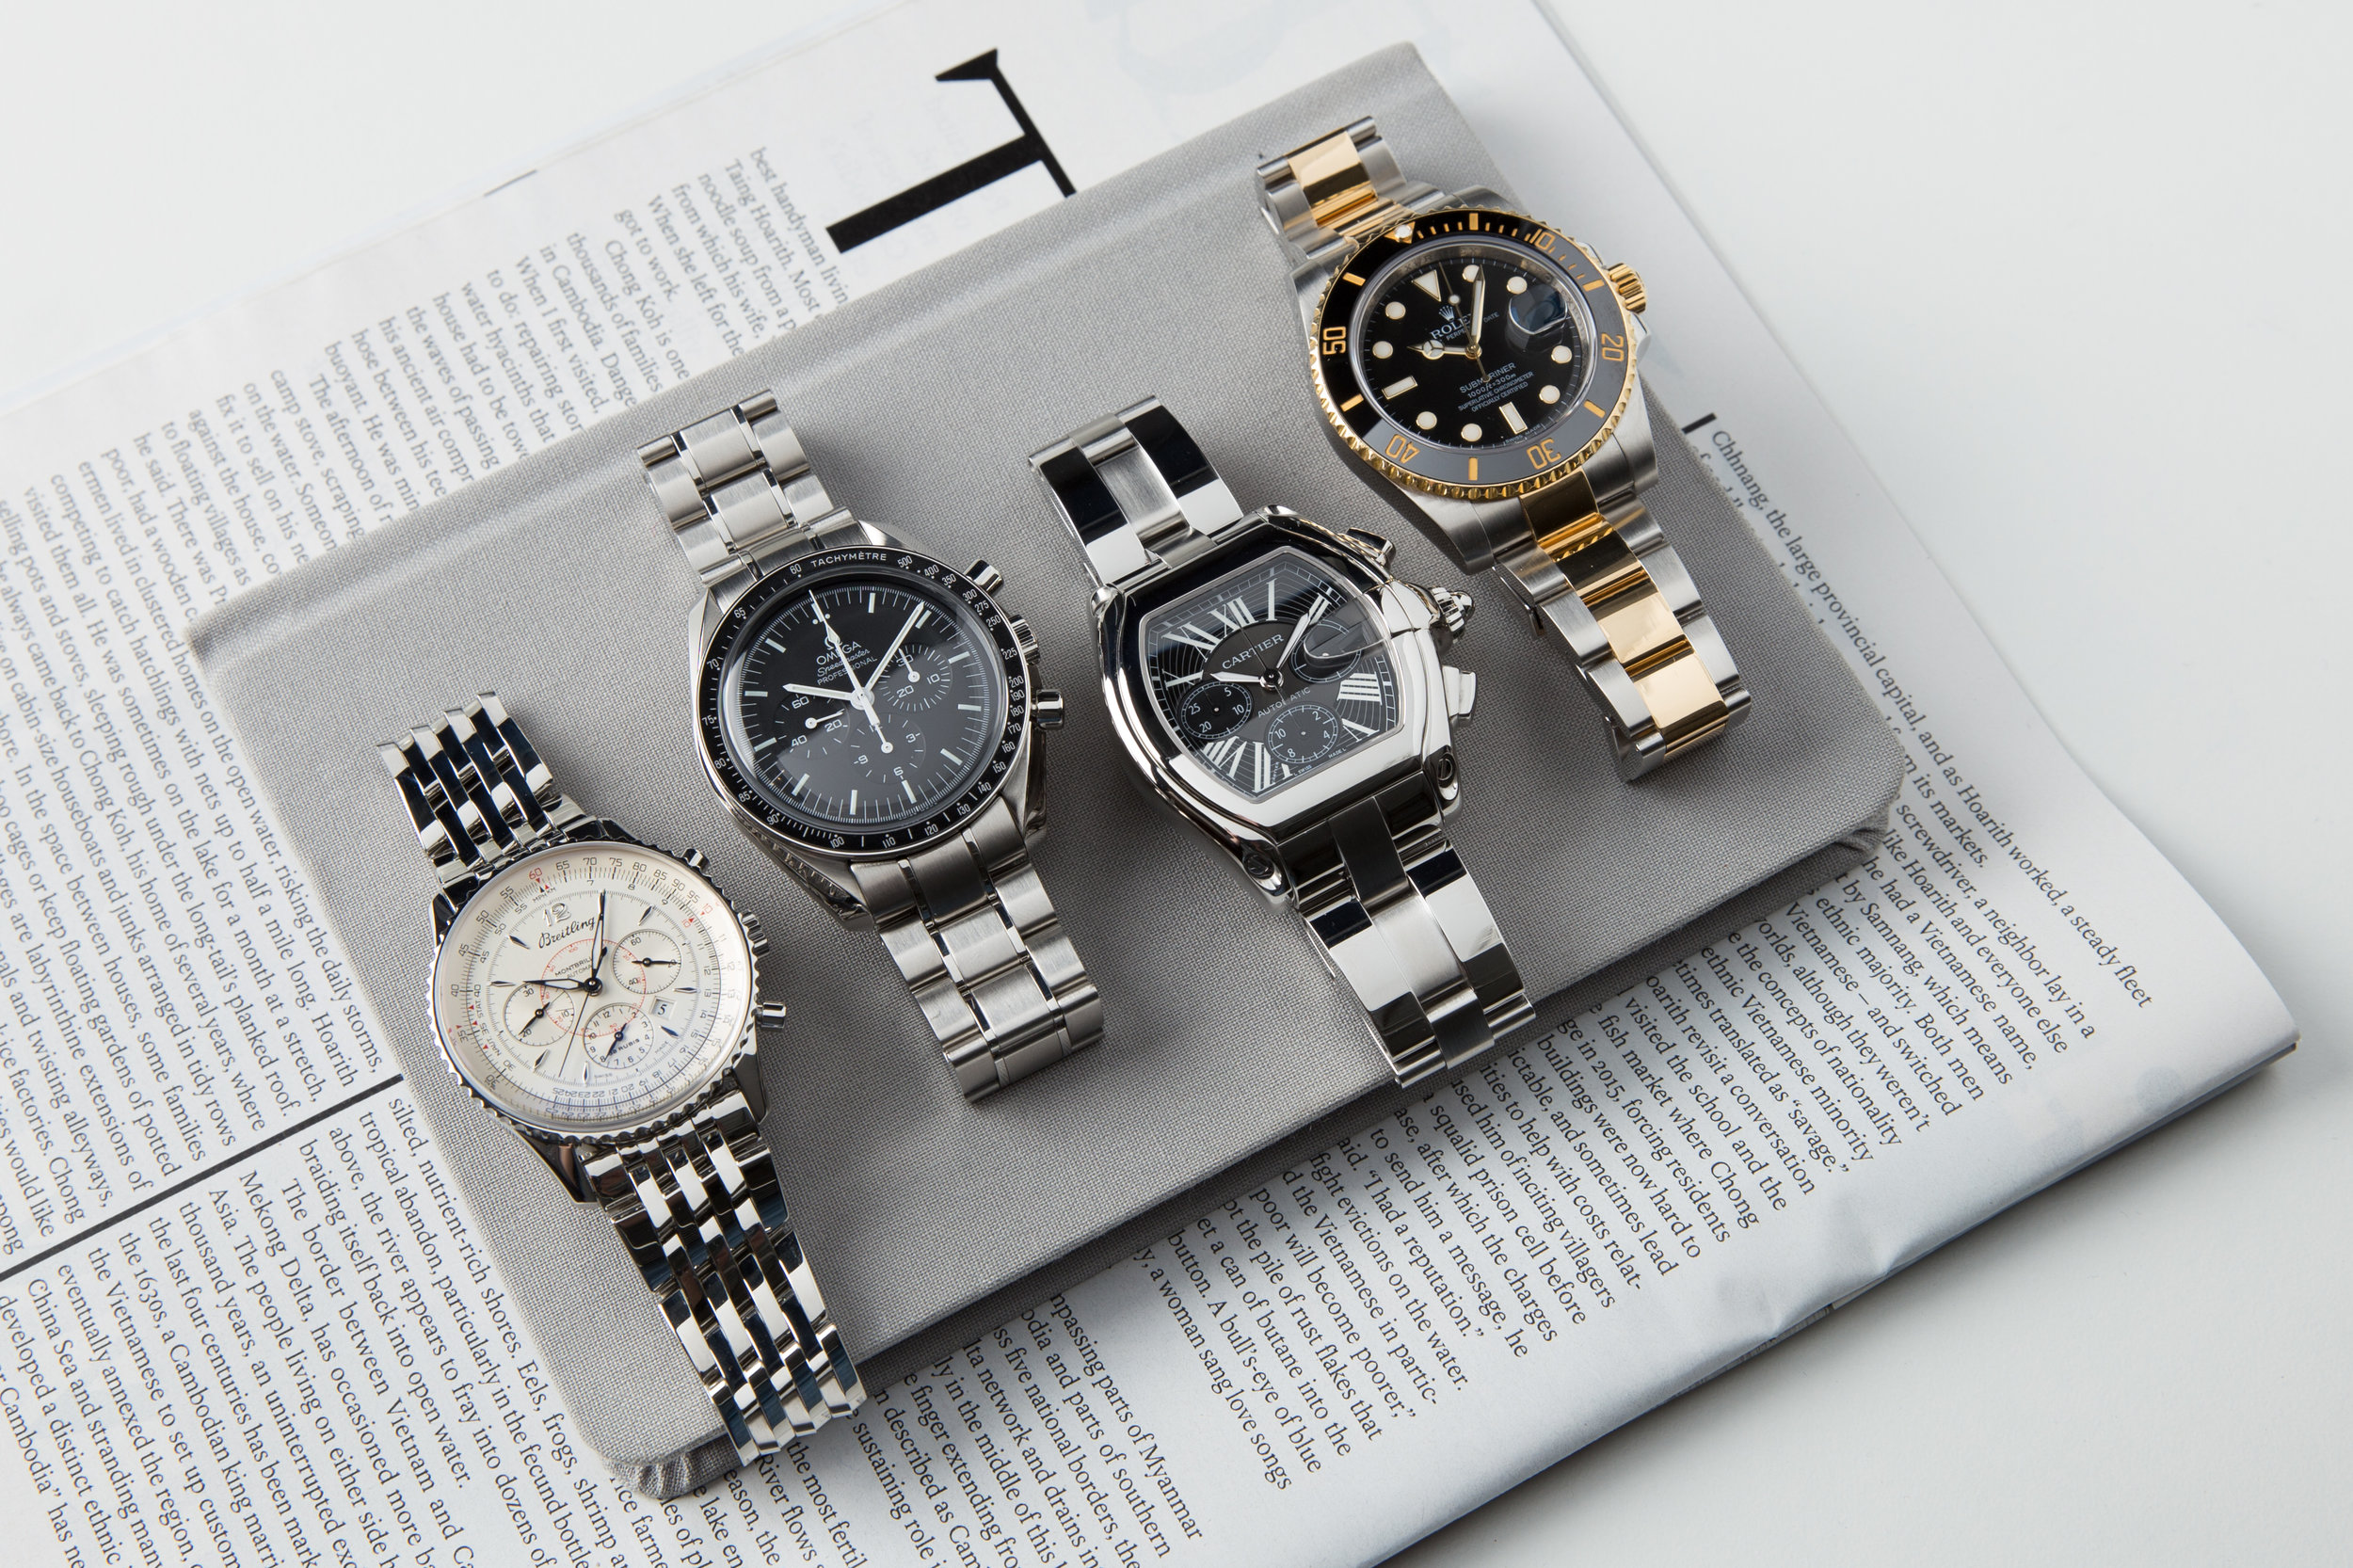 BREITLING MONTBRILLIANT NAVITIMER, OMEGA SPEEDMASTER PROFESSIONAL, CARTIER ROADSTER, ROLEX SUBMARINER TWO TONE GOLD